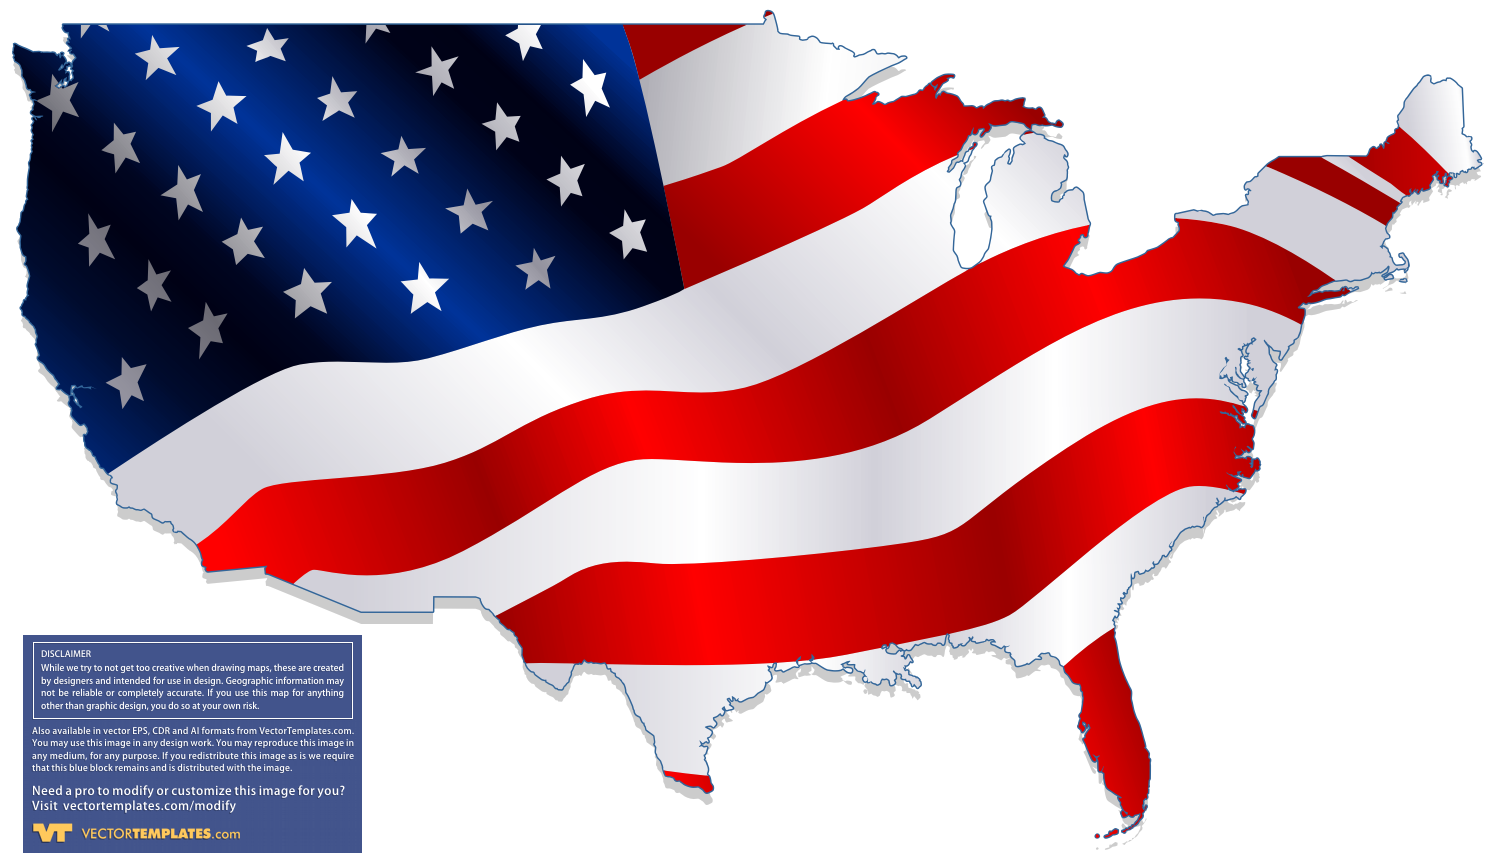 US Maps USA State Maps - Free usa map vector